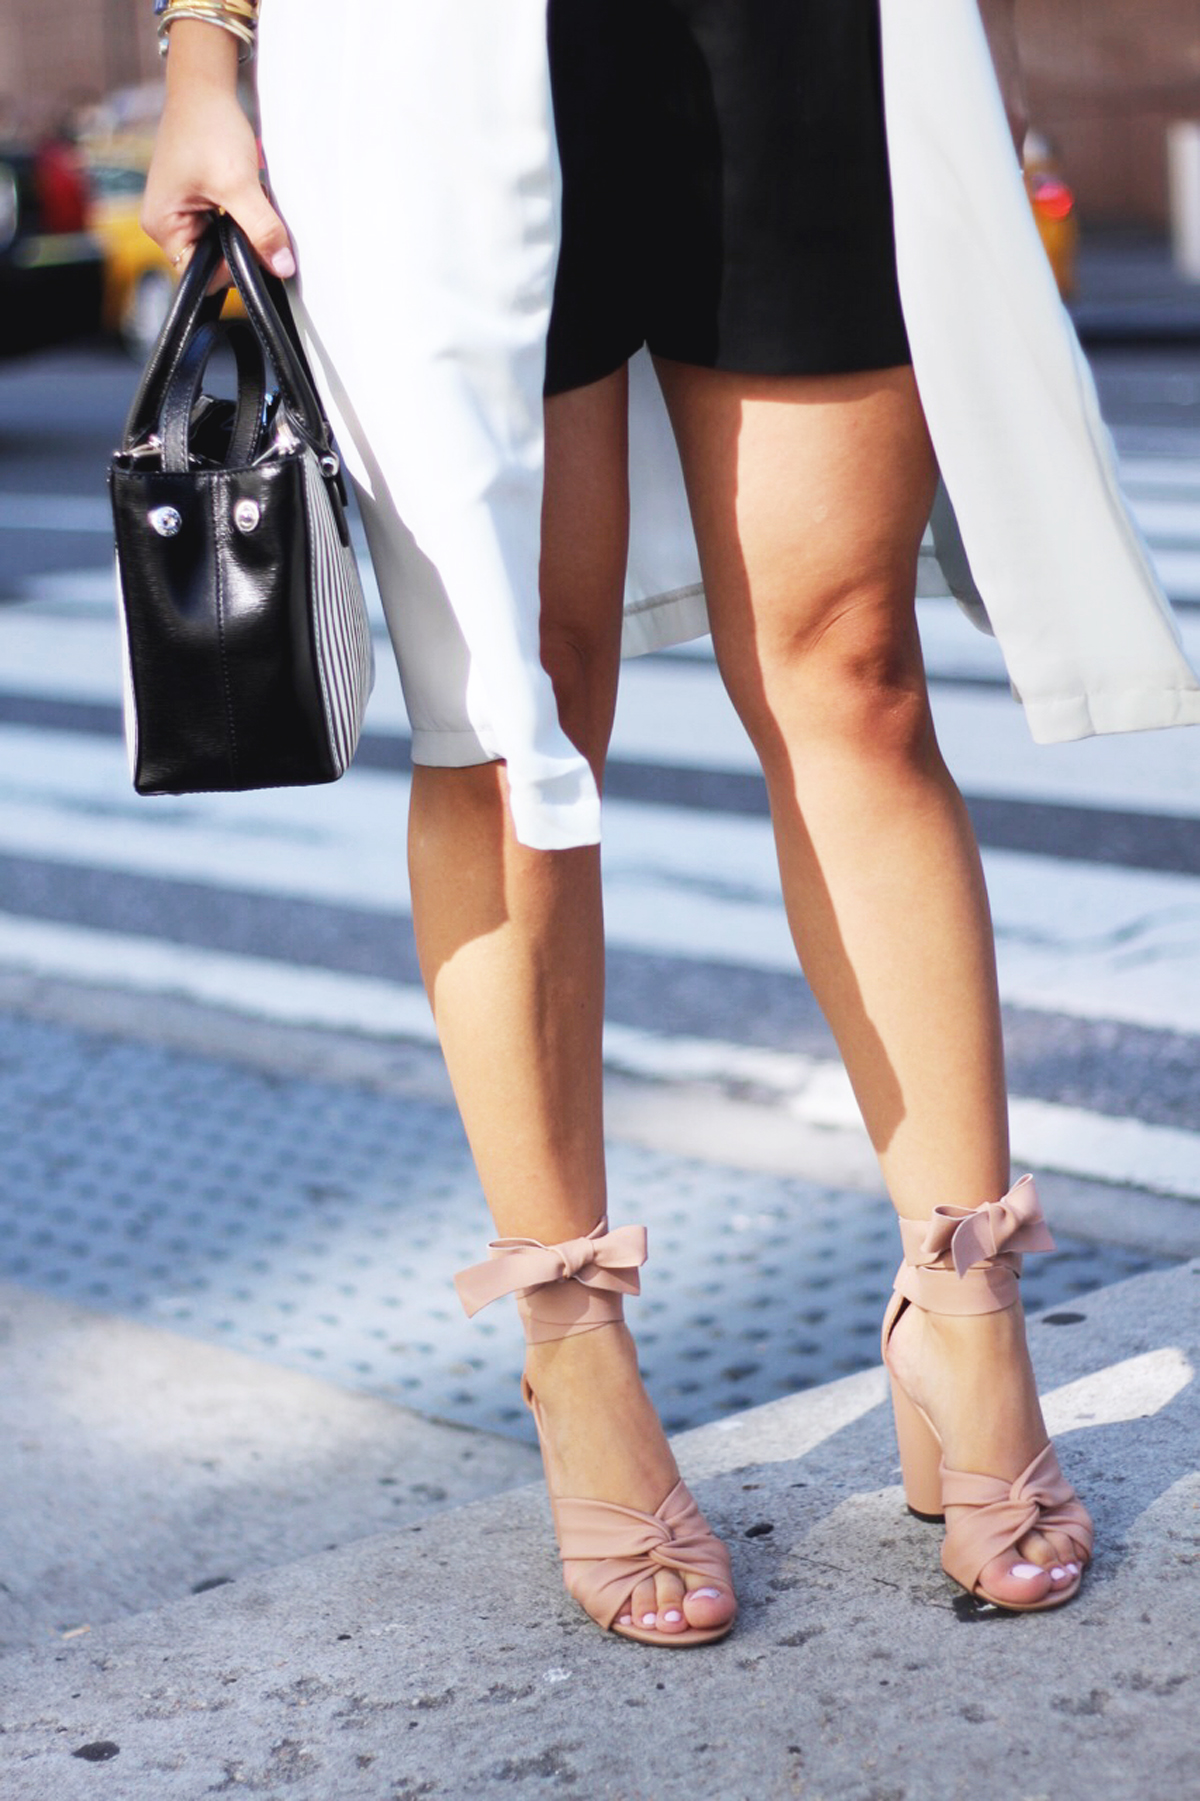 Ralph Lauren black and white stripe bag, Zara faux leather shorts, and Topshop blush sandals.